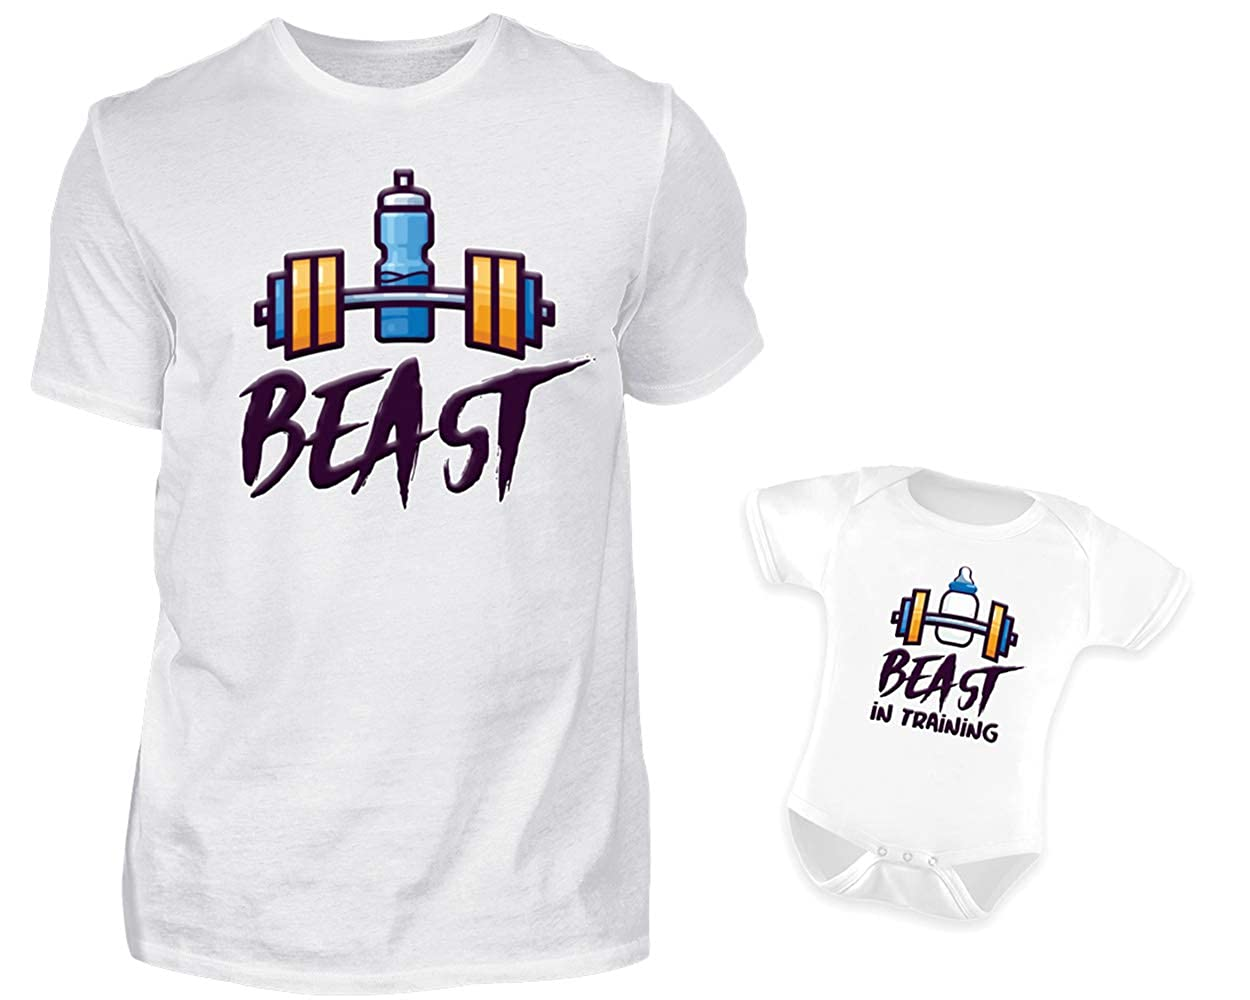 Vater Baby Partnerlook Set Tshirt Baby Body Strampler Set Father of A Princess Daughter of A King Rundhals Vater Tochter